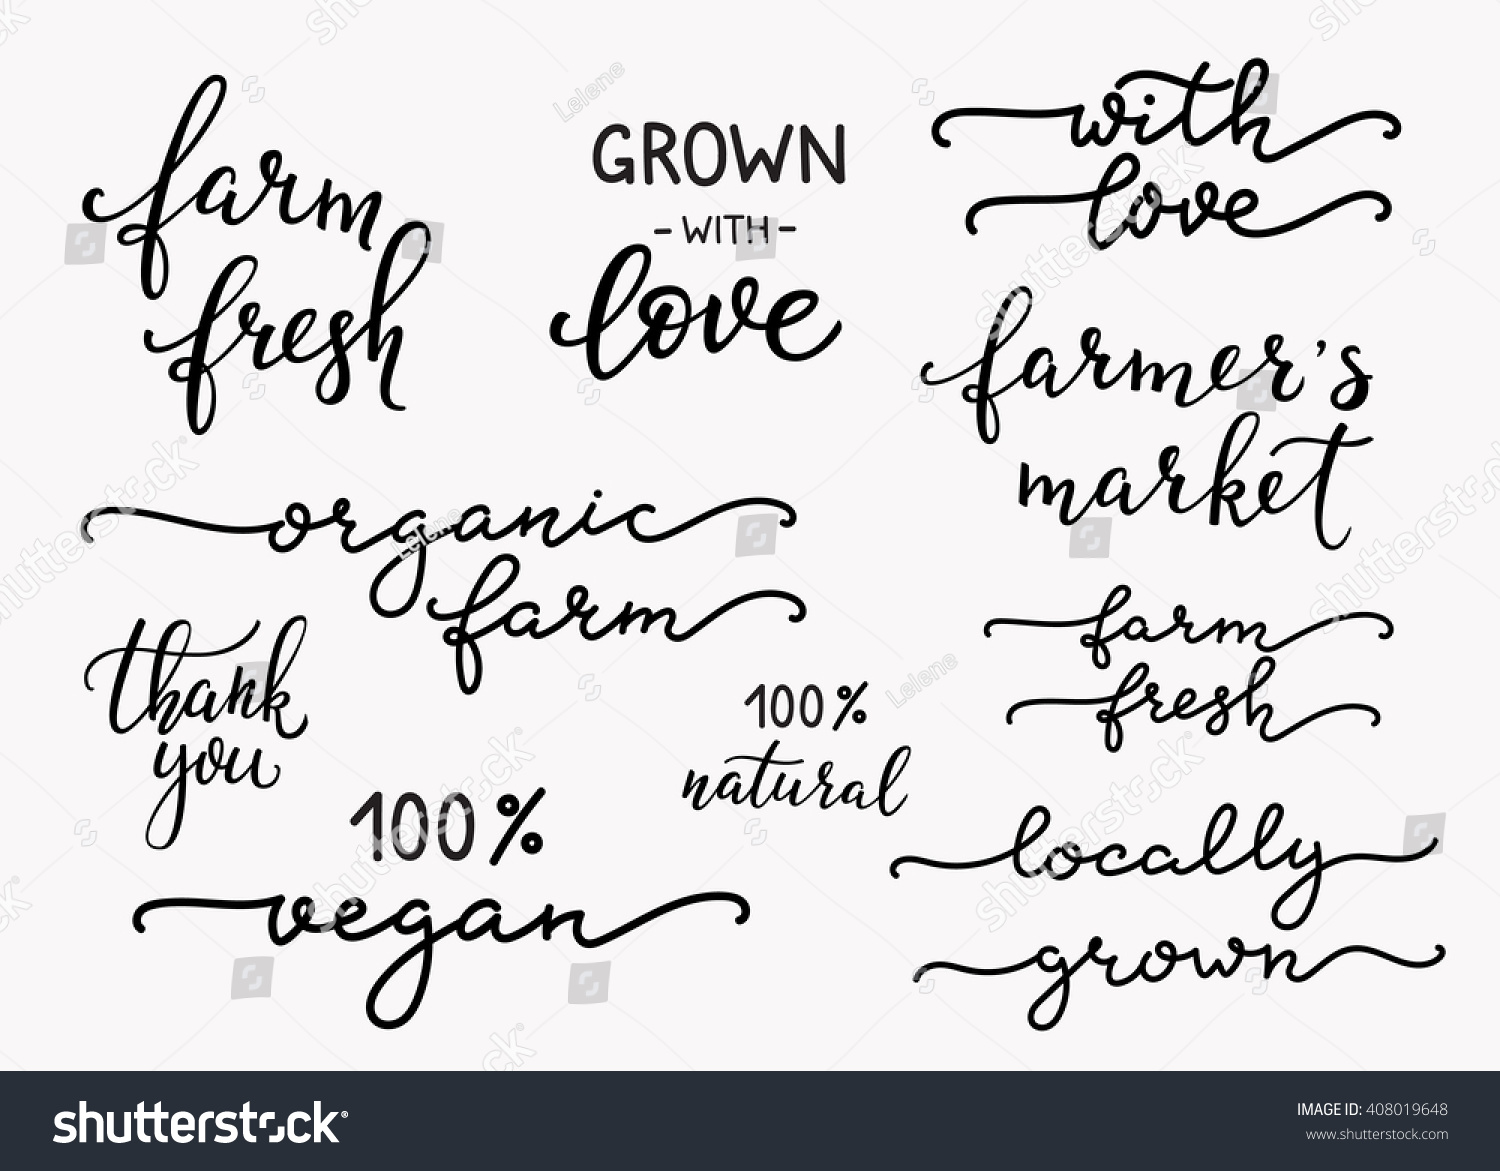 Hand Written Calligraphy Style Organic Farm Stock Vector